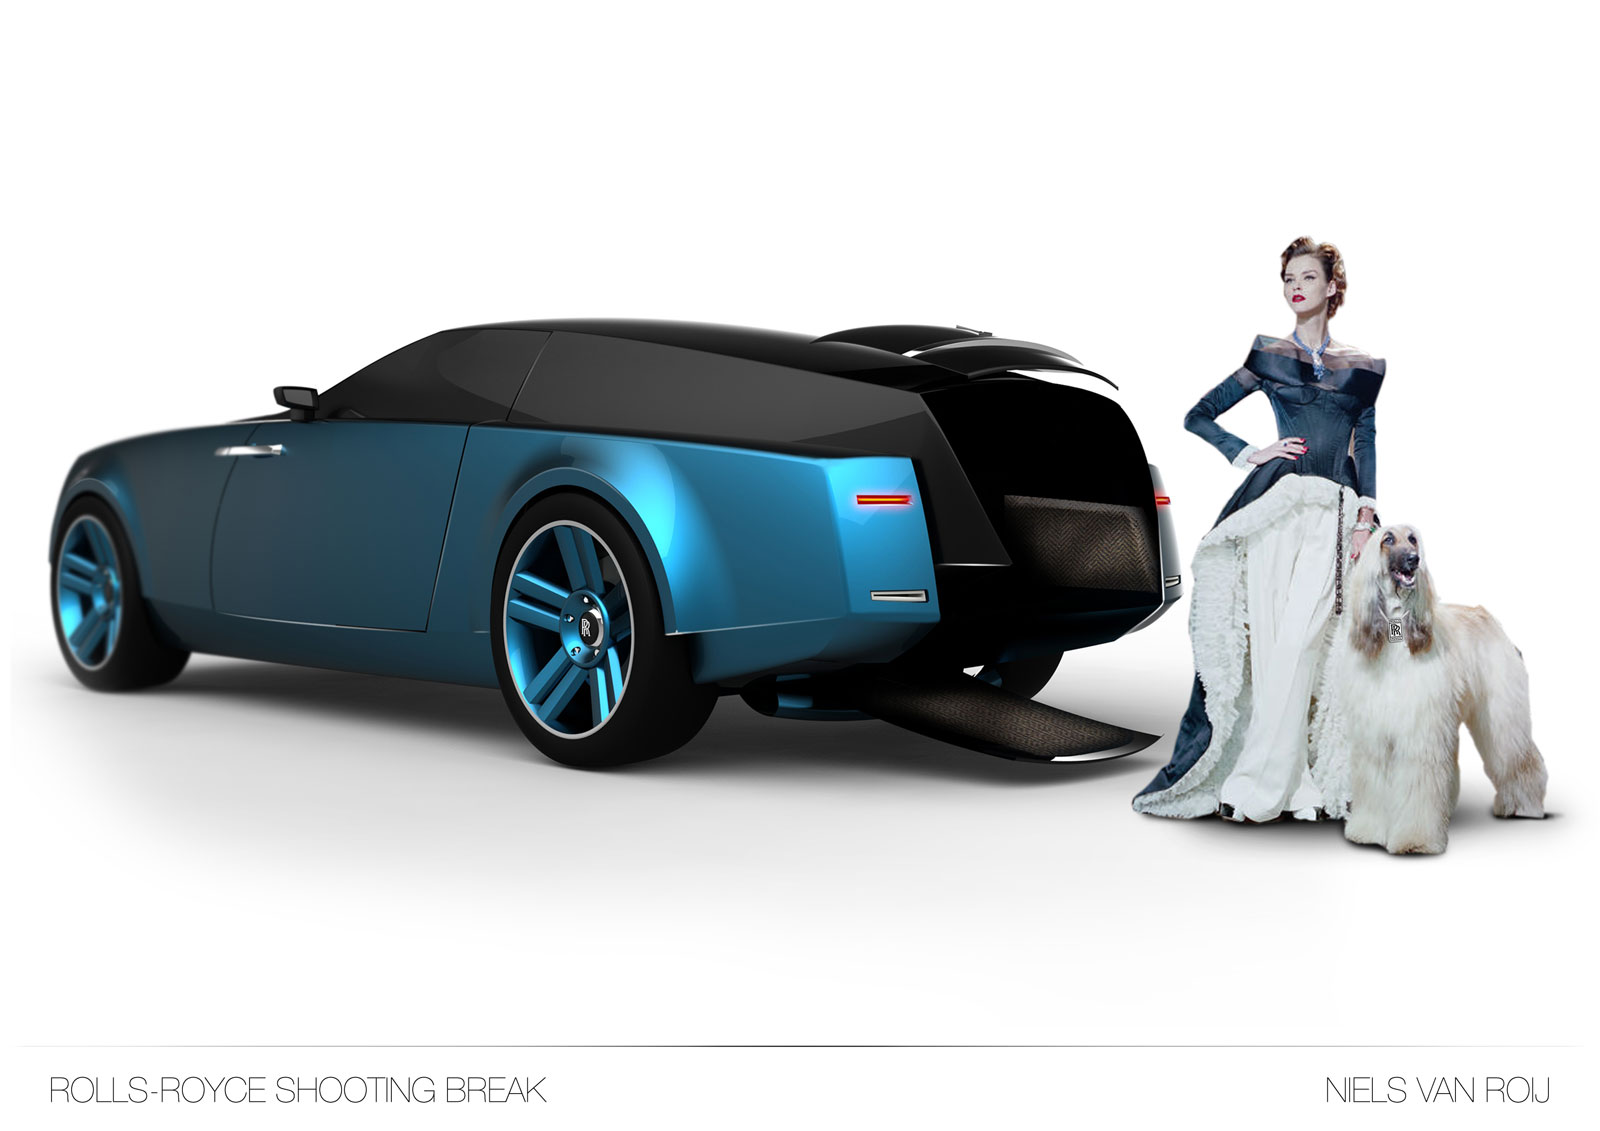 Rolls Royce car with Royal college of Art blue 20